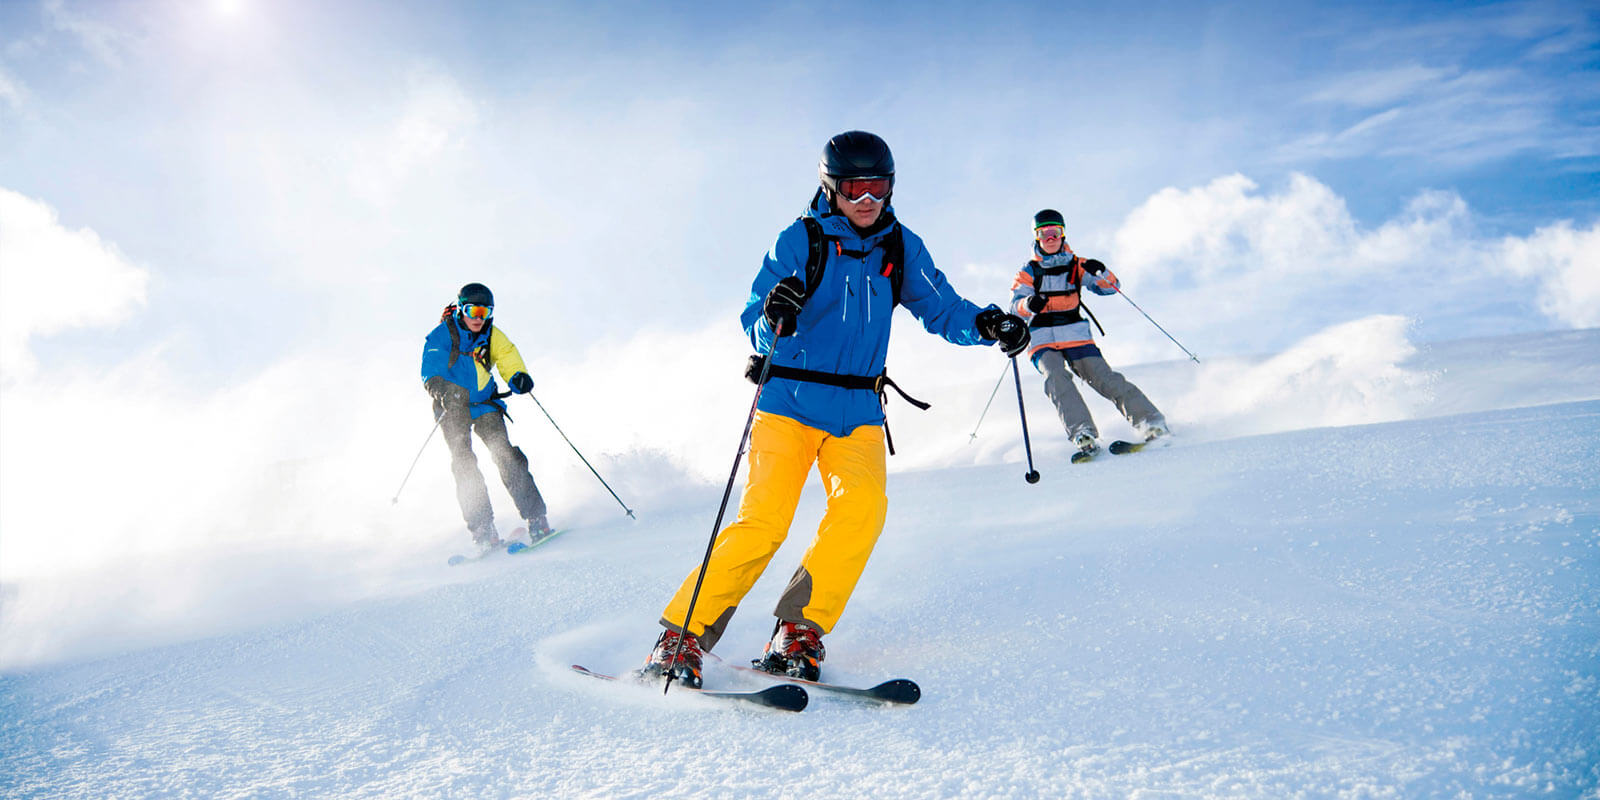 Kanpai Tourism - Snow Activities